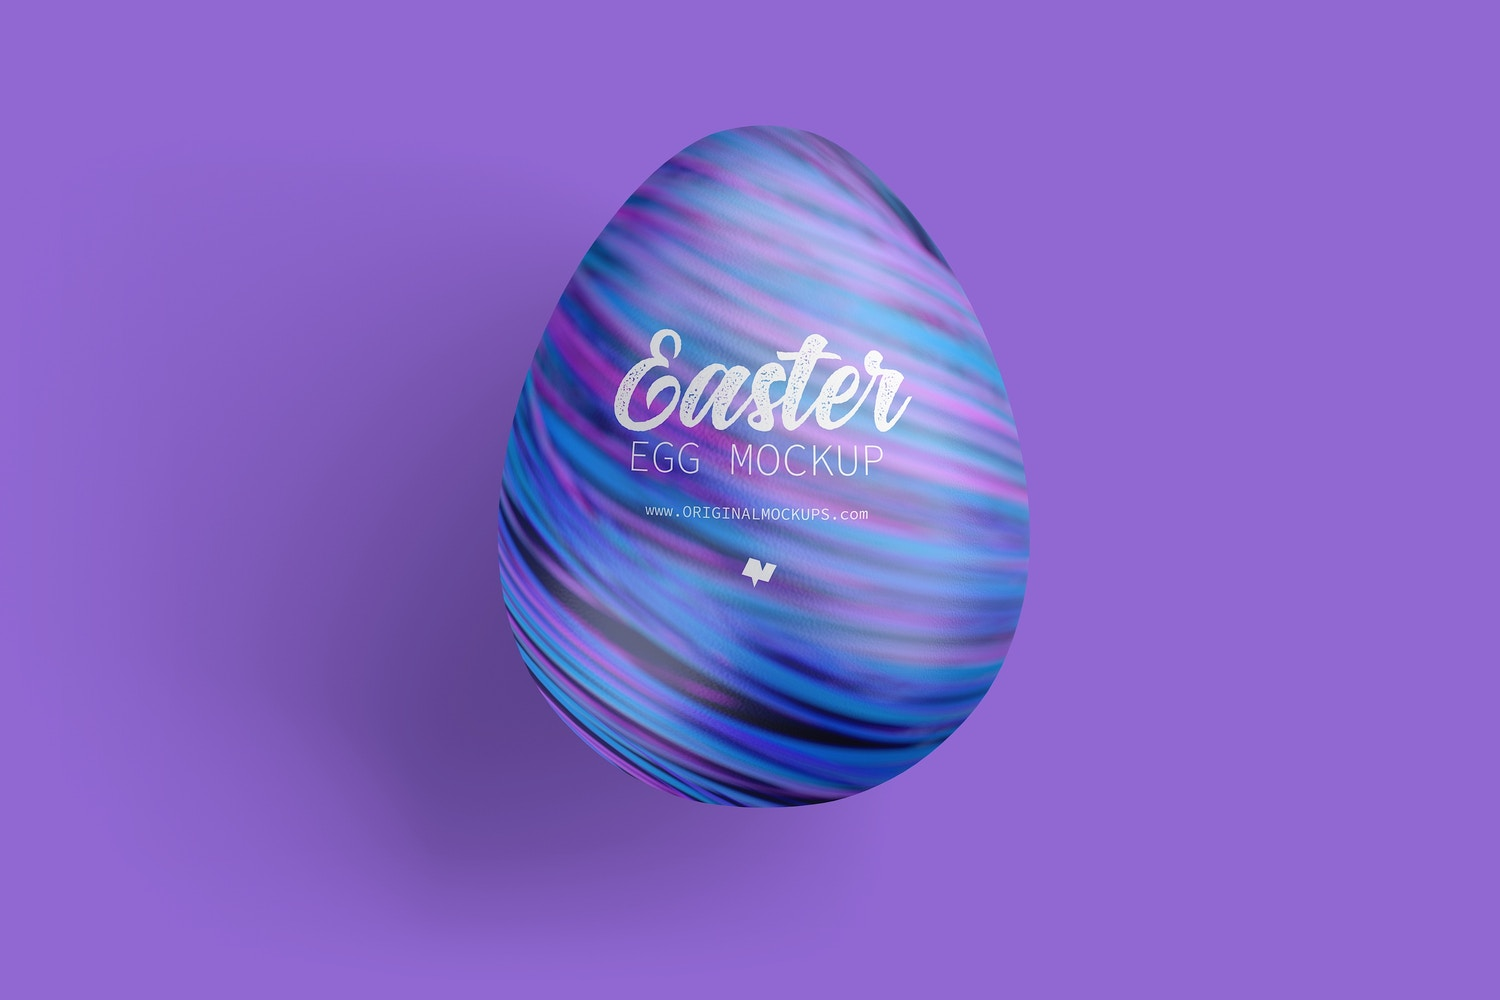 Easter Egg Mockup, Top View (1) by Original Mockups on Original Mockups